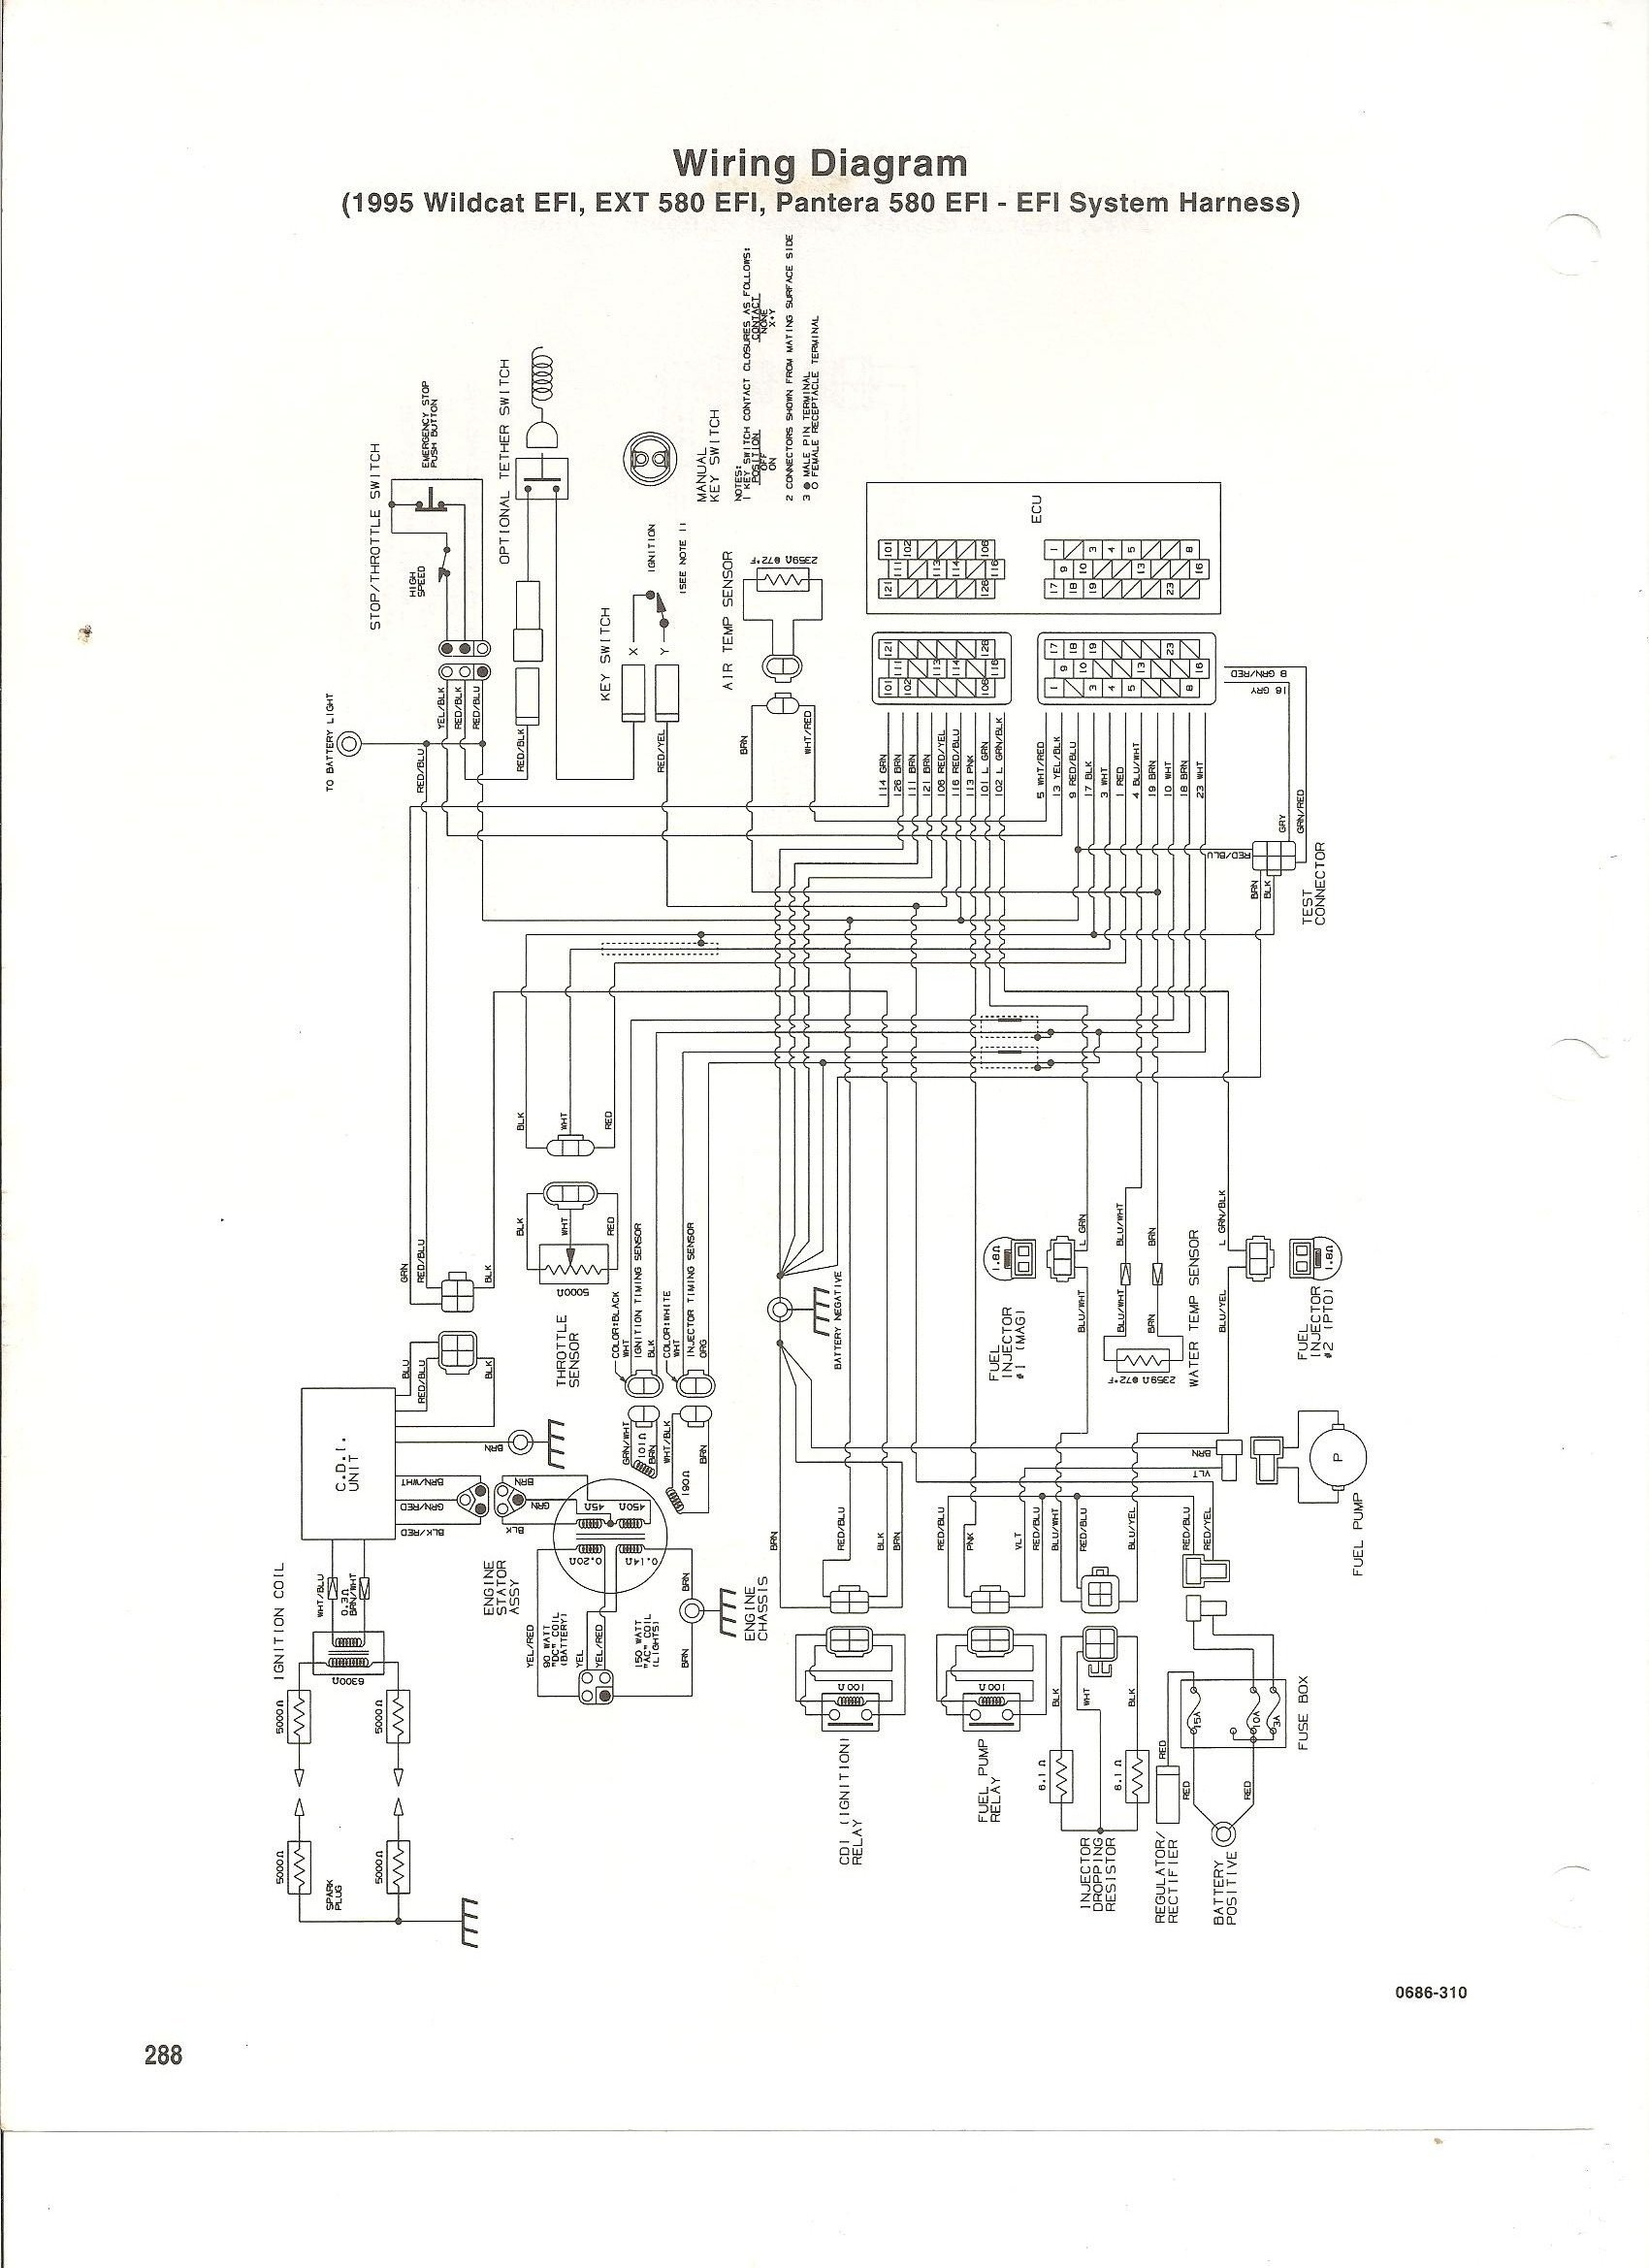 Polaris 300 Express Wiring Diagram